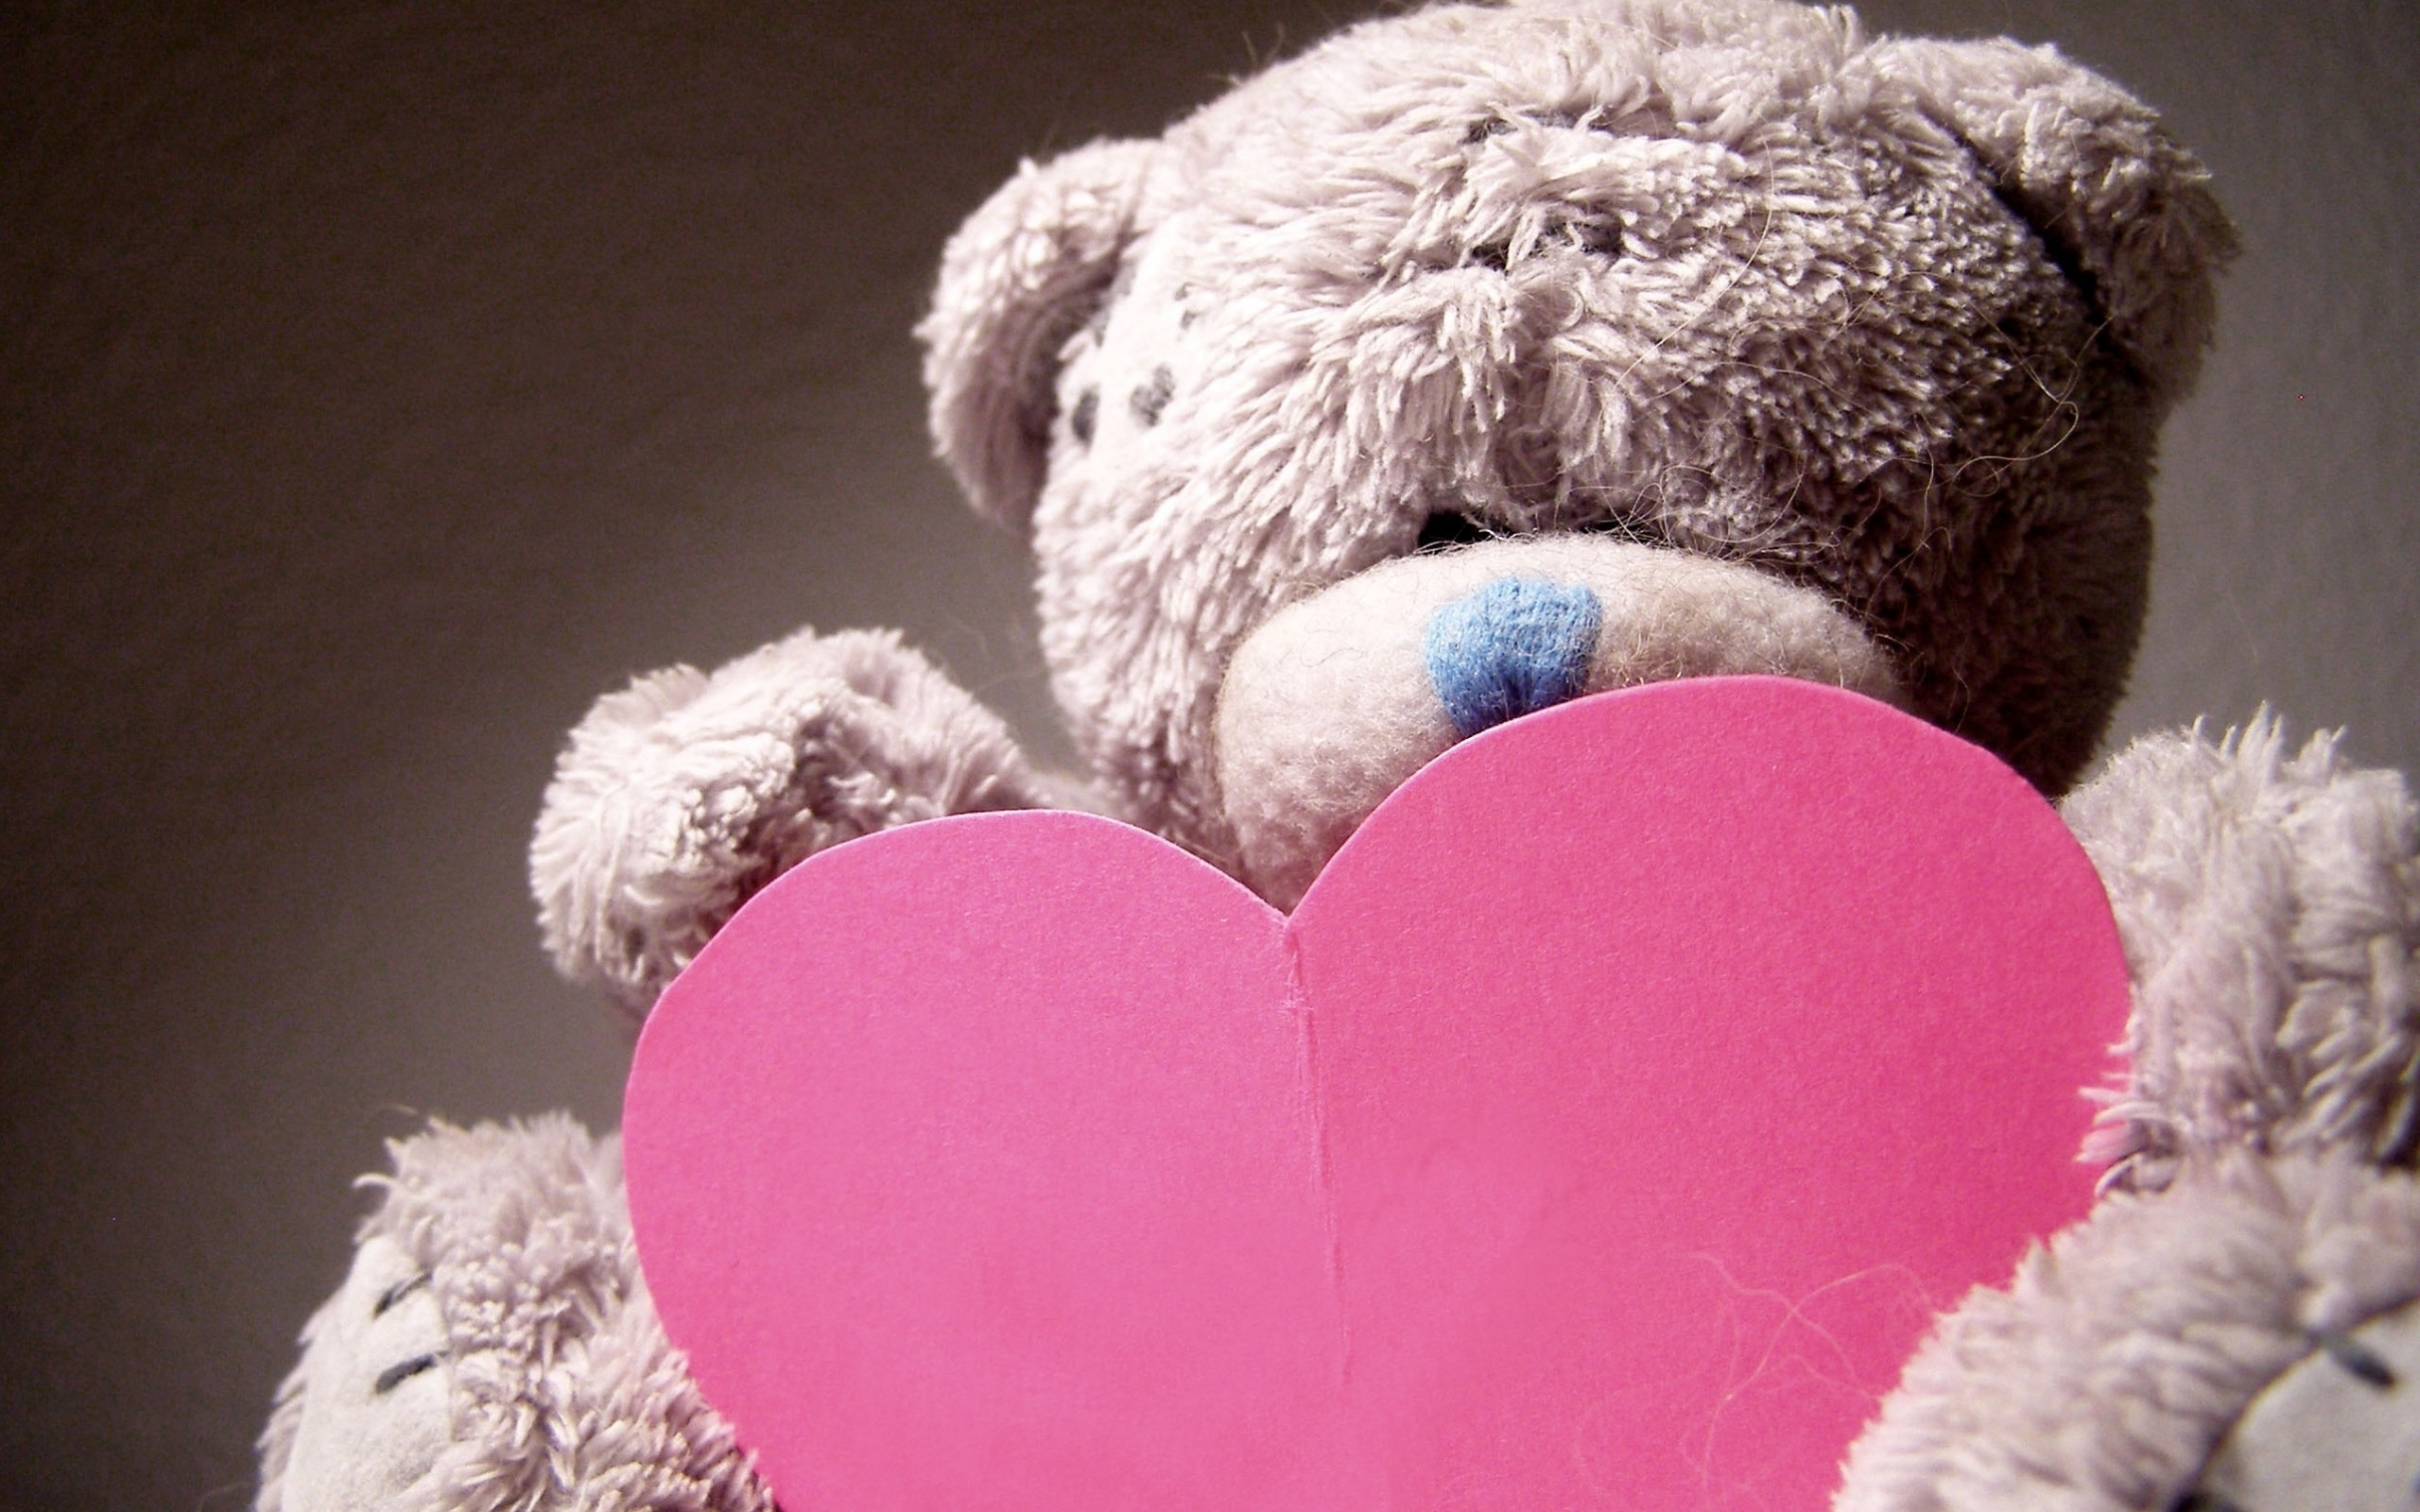 48978 download wallpaper Hearts, Toys, Objects screensavers and pictures for free